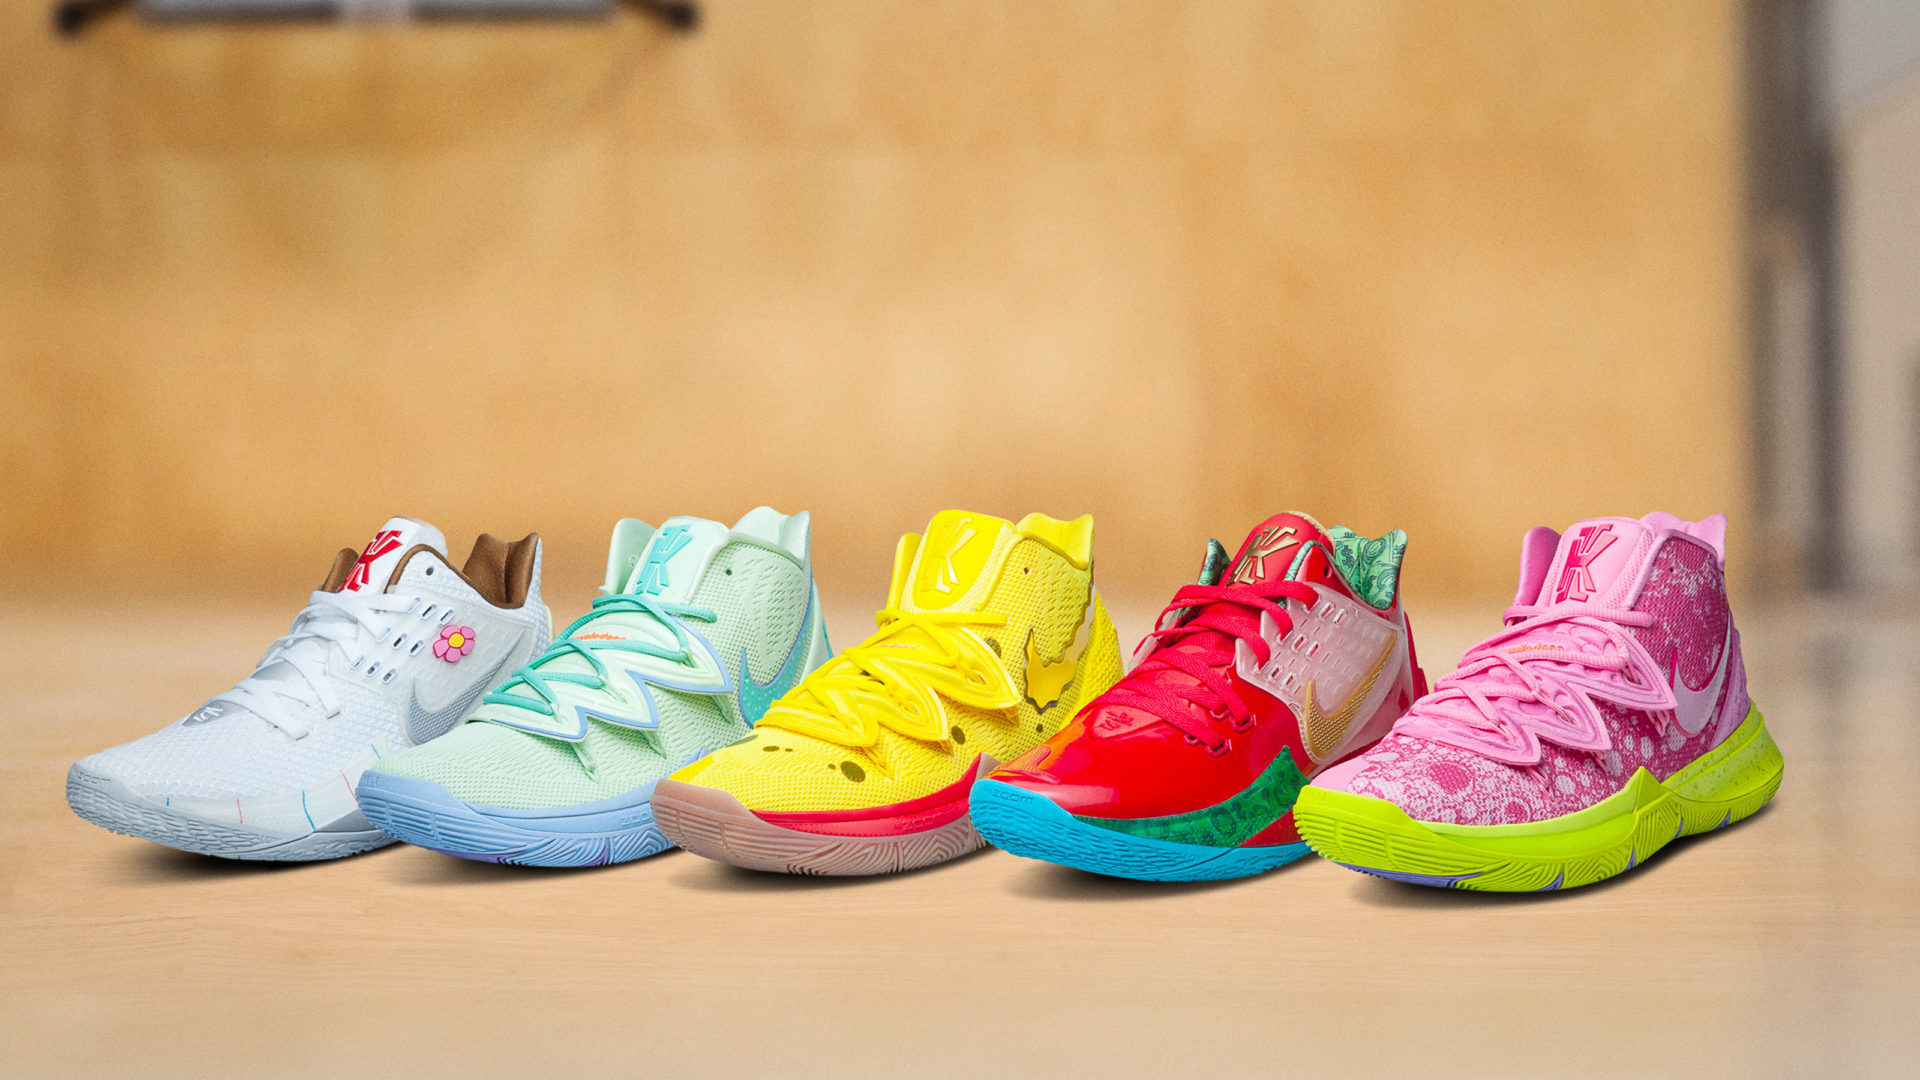 premium selection d3102 a727b Nike's latest Kyrie 5 brings Spongebob and his pals out of ...